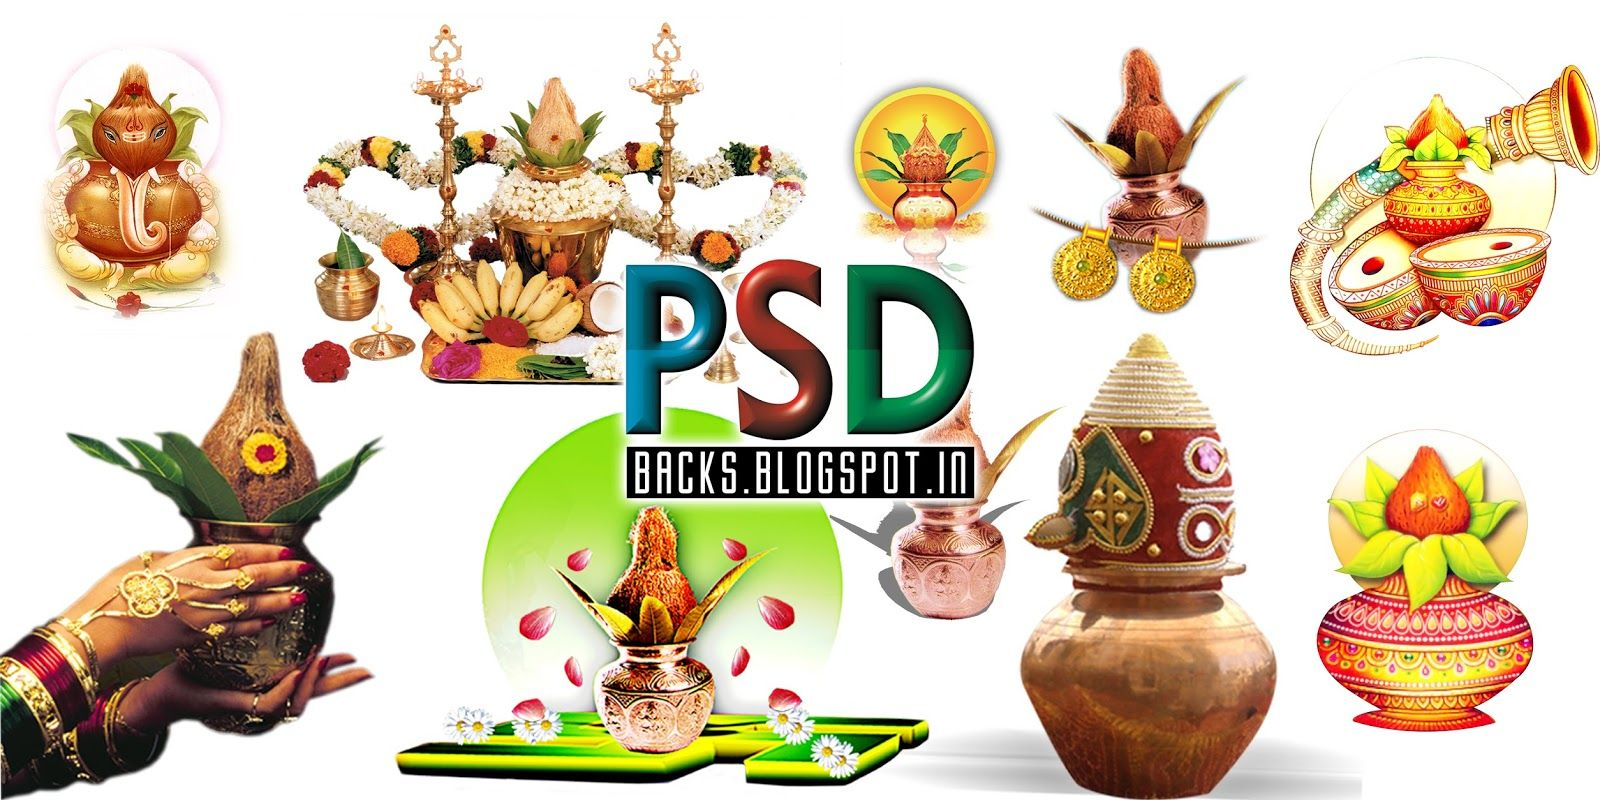 Indian wedding clipart psd free download 2.